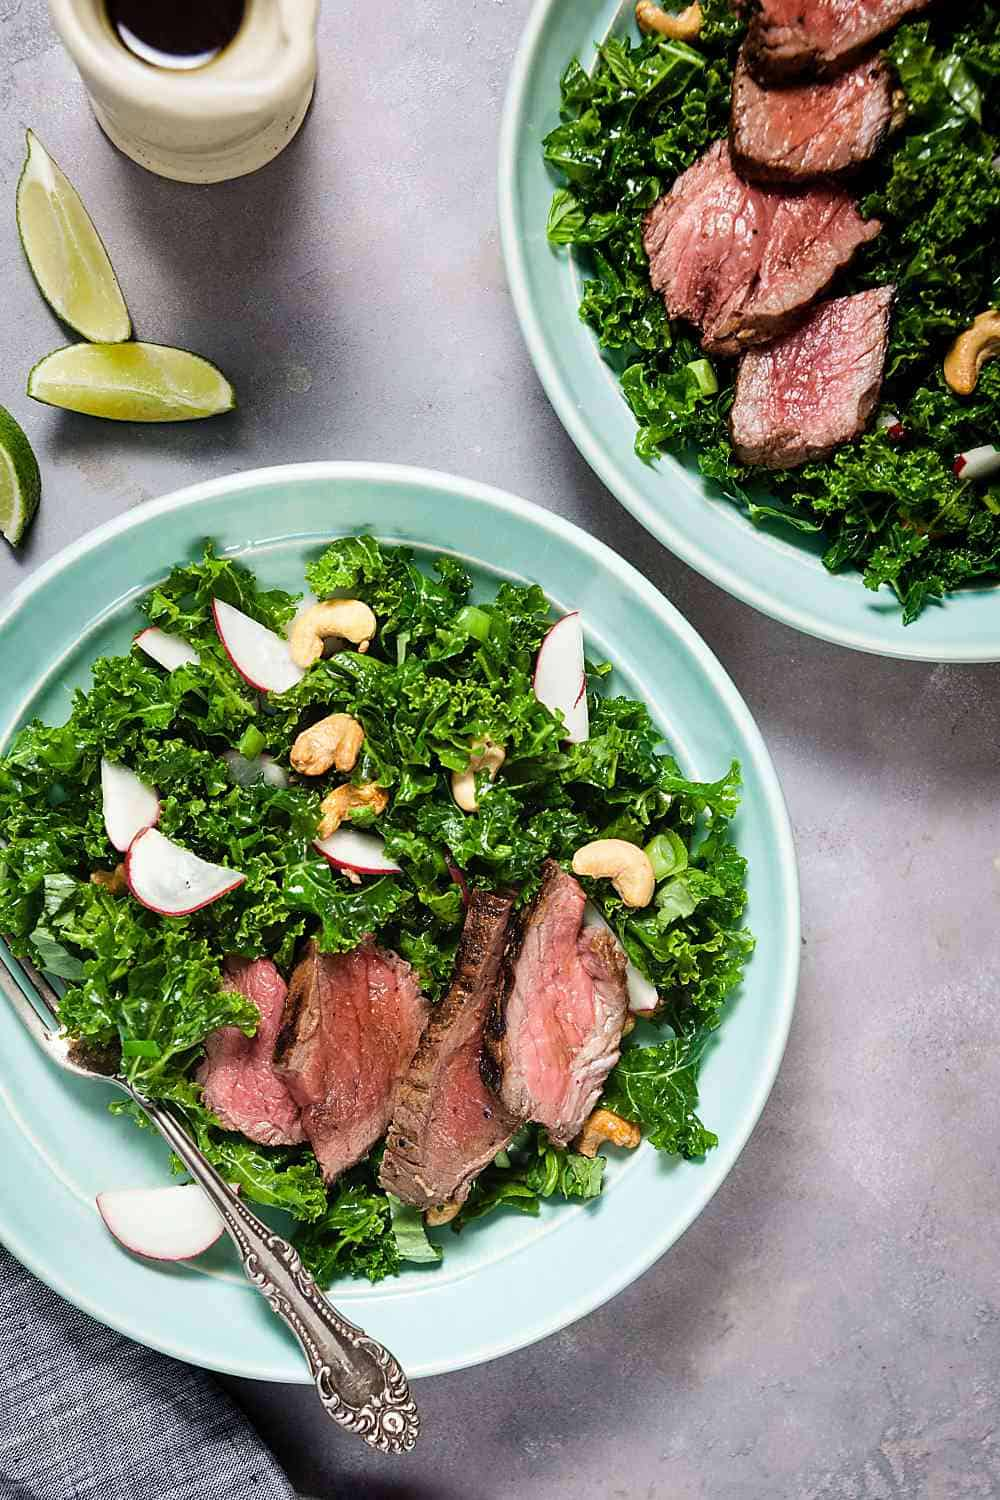 Thai Steak Salad with Kale and Cashews